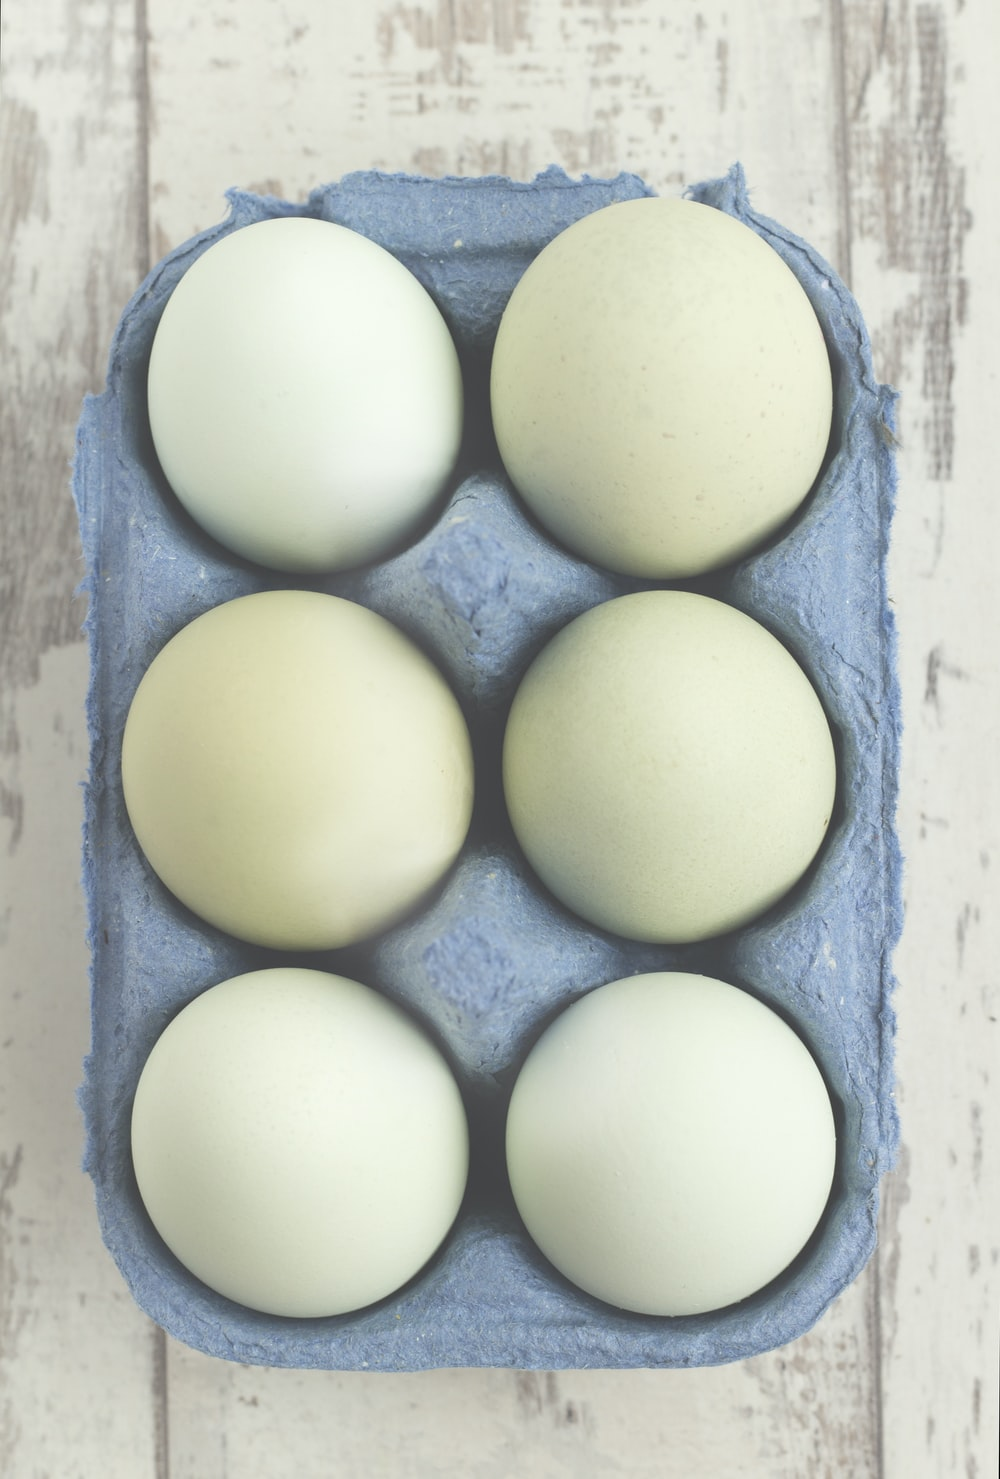 six white eggs placed on gray tray